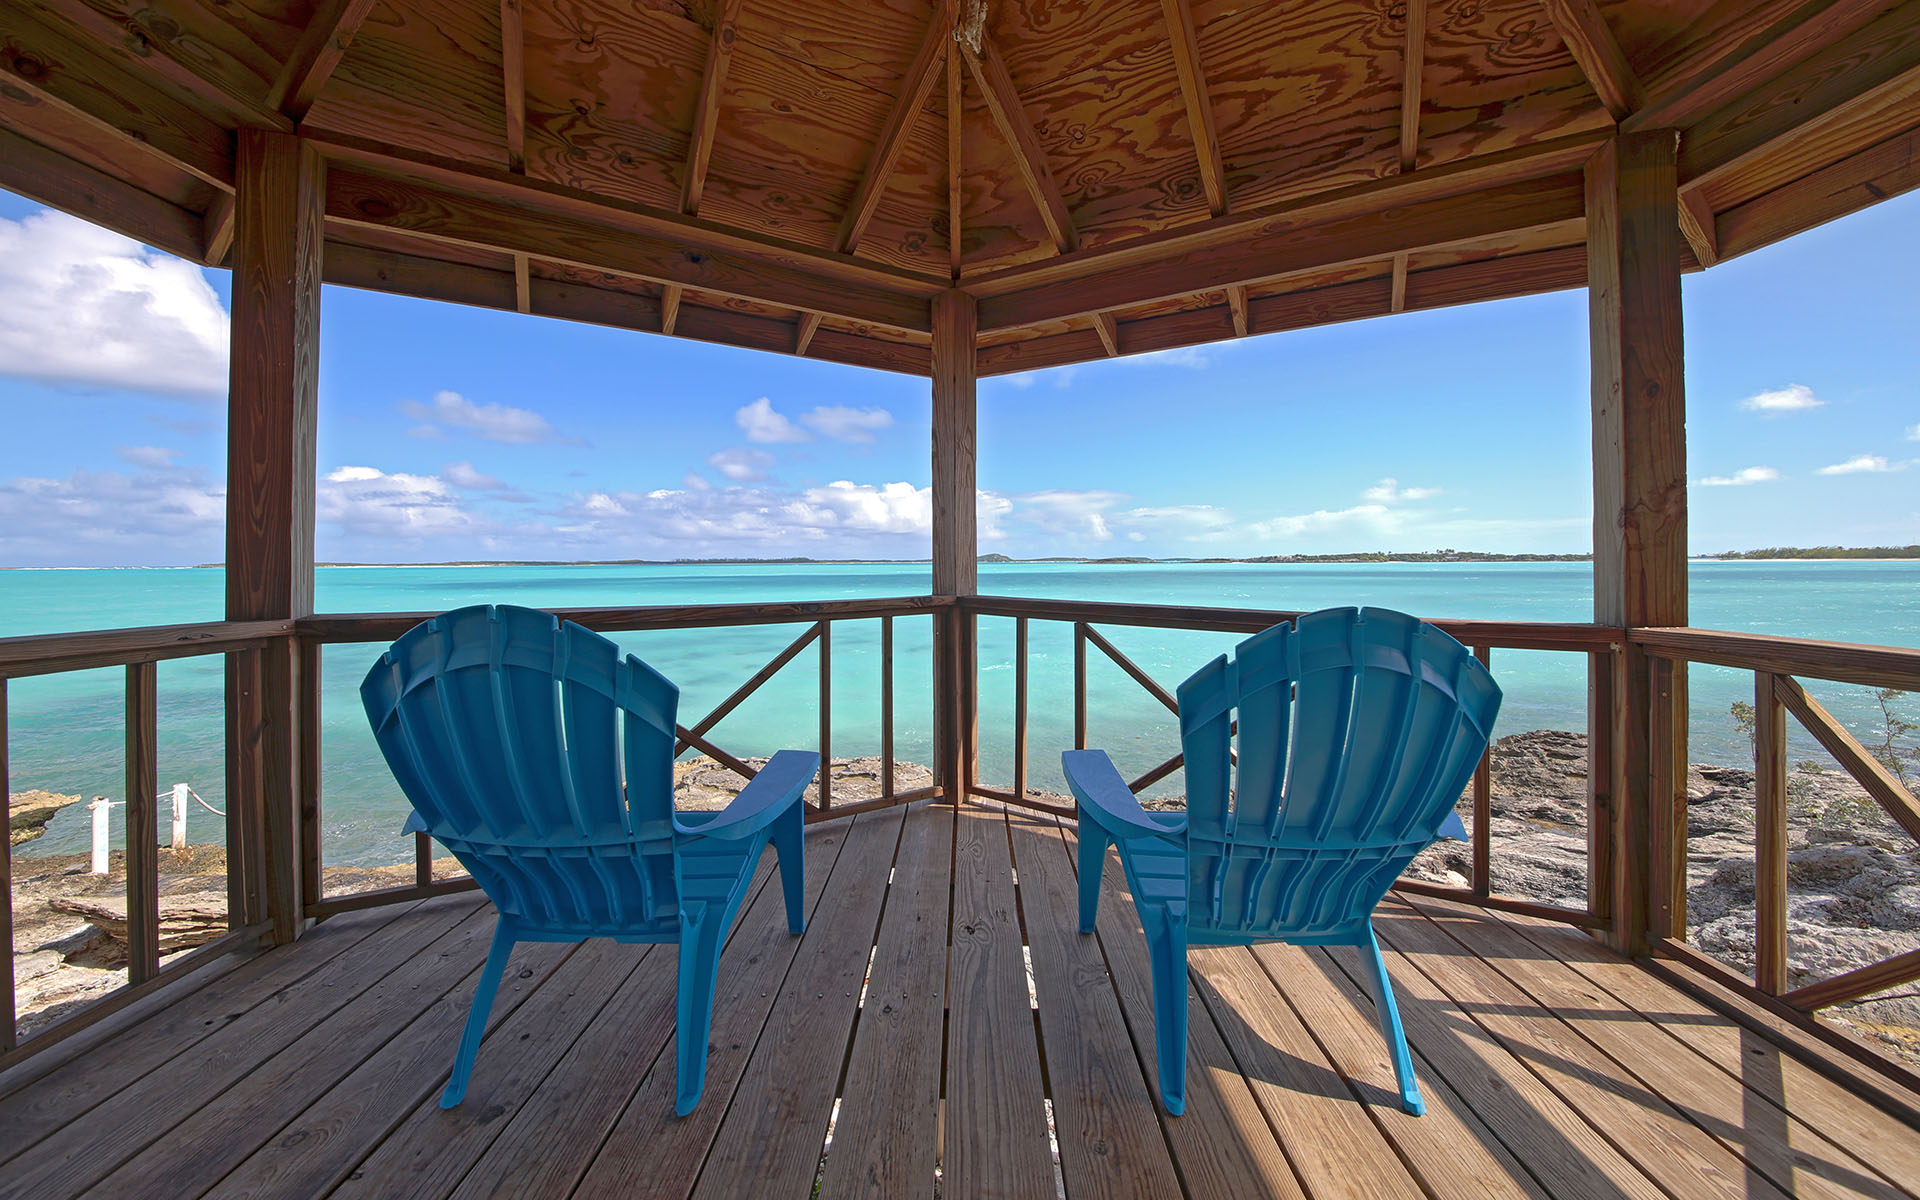 Single Family Home for Sale at Two Bedroom Waterfront Home with Rental Potential-MLS 28943 Georgetown, Exuma, Bahamas